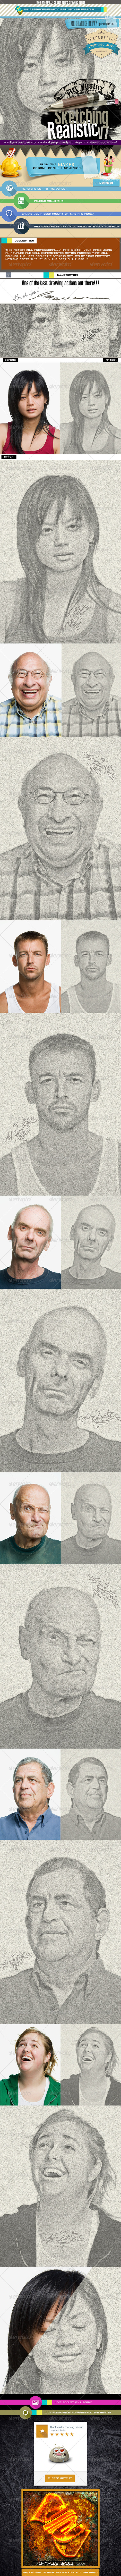 GraphicRiver Art Justice Realistic Sketching Vol 7 8575886